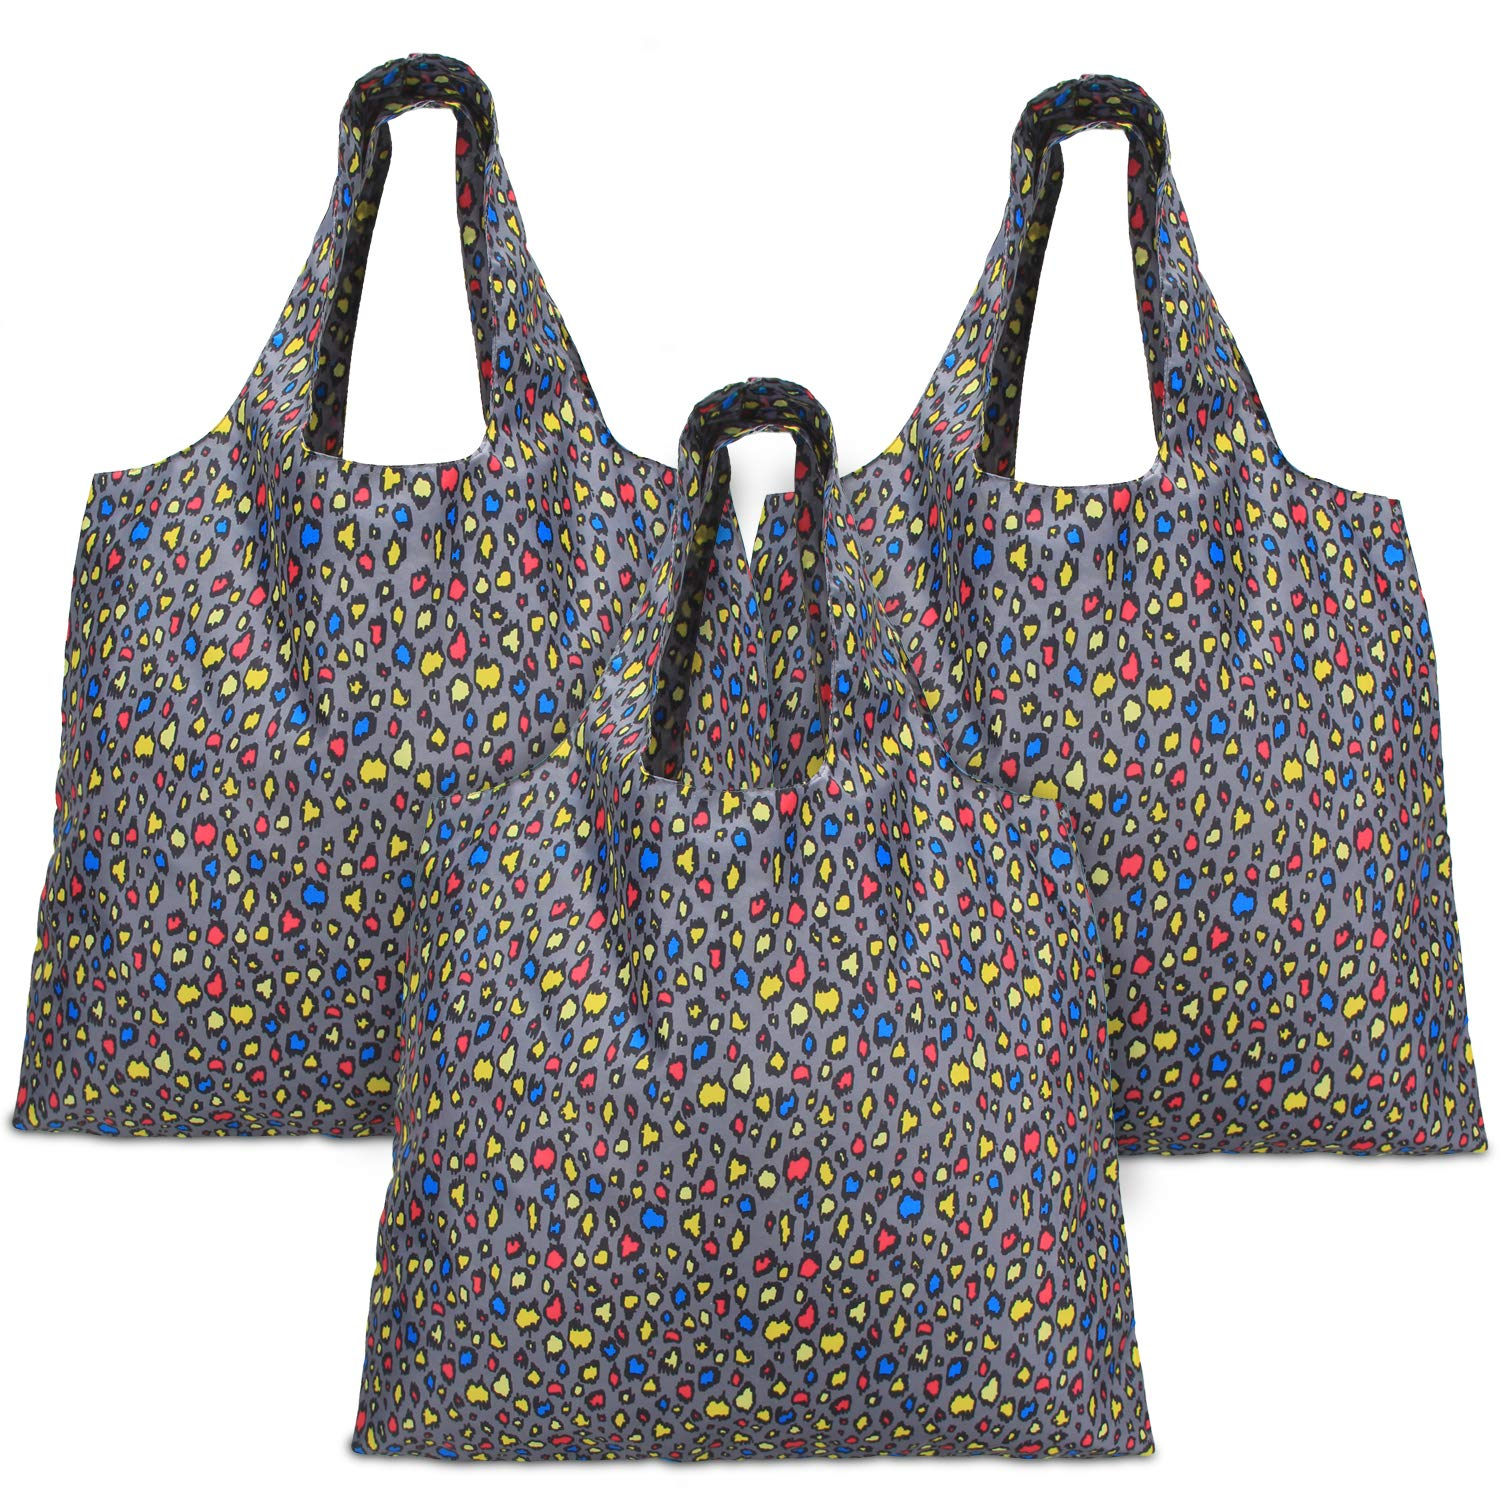 Luxja Reusable Shopping Bags Set of 3, Foldable Grocery Bags with Attached Pouch, Washable, Durable and Lightweight, Rose